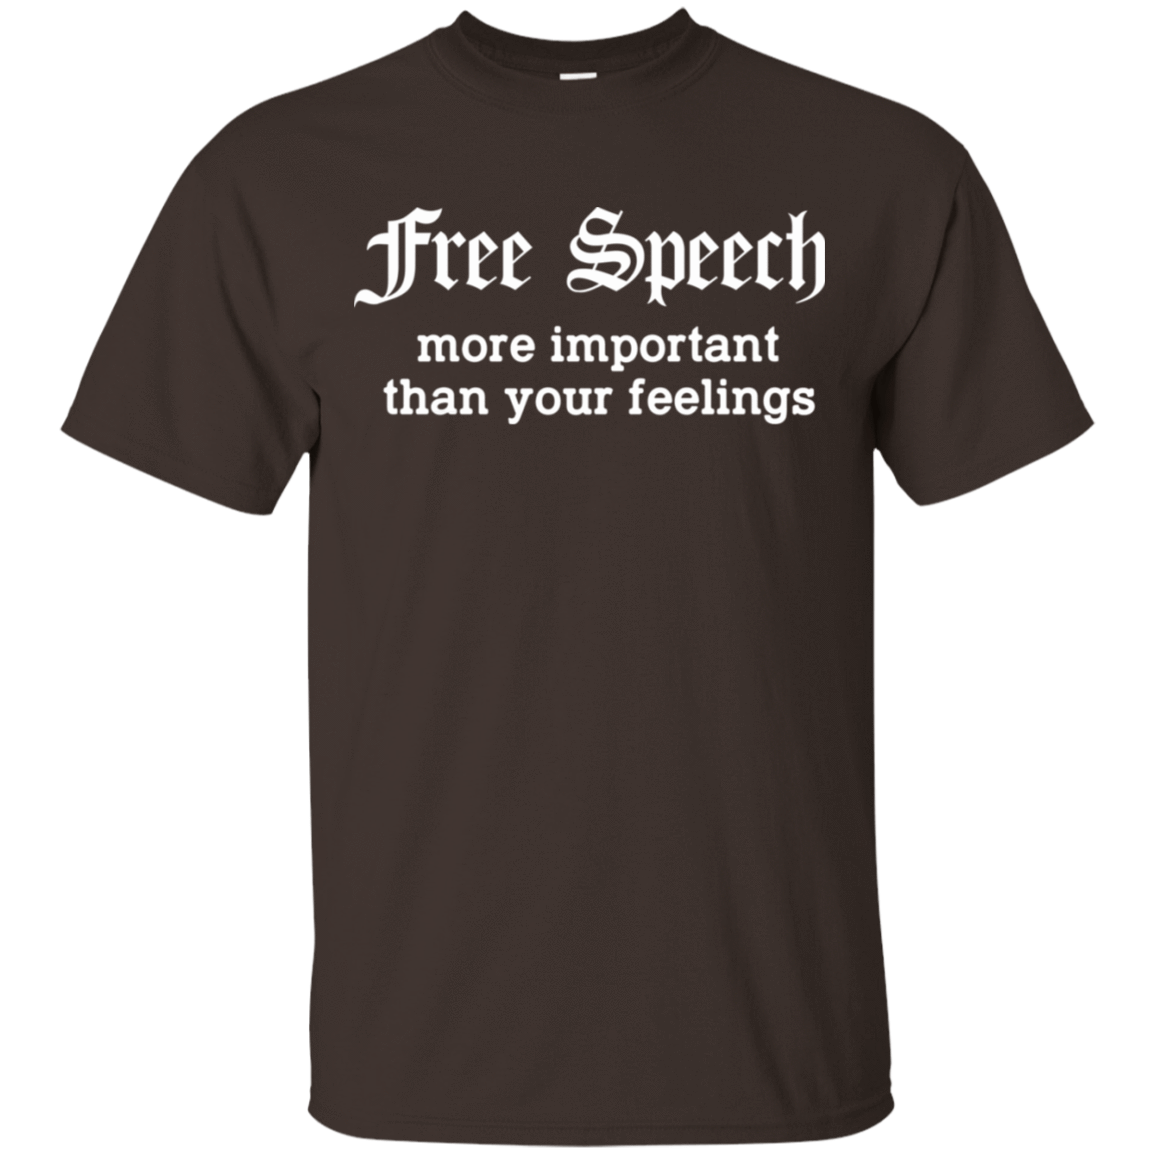 Free Speech More Important Than Your Feelings 22-2283-74209397-12087 - Tee Ript